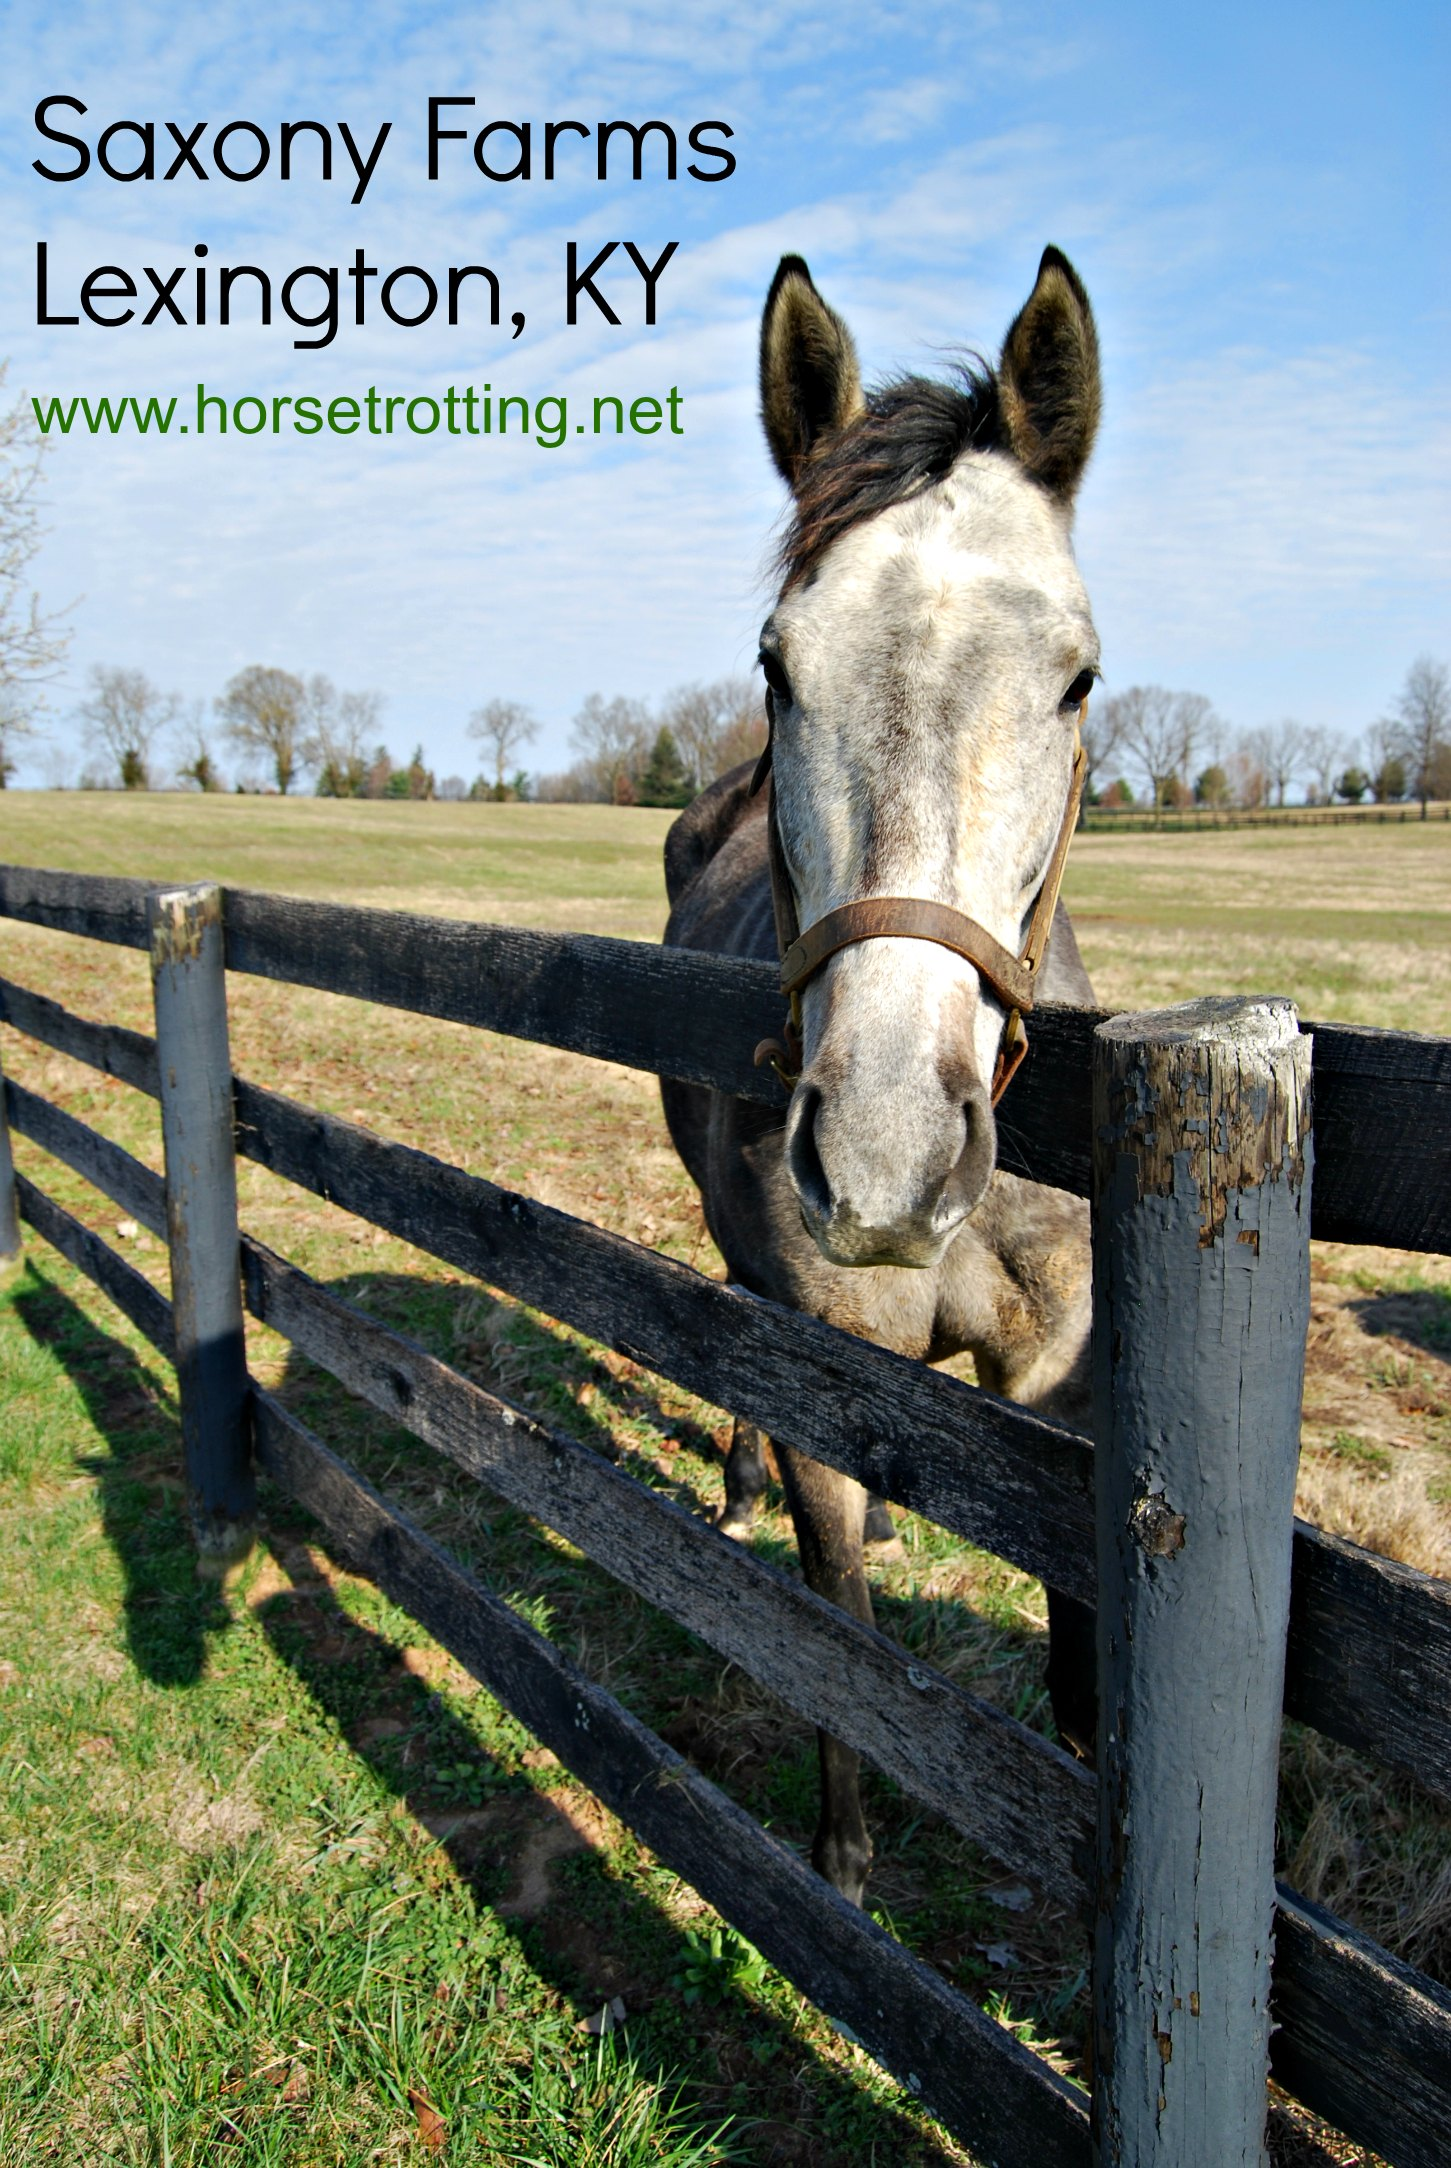 thoroughbred horses in a paddock at Saxony Farms, Lexington, Kentucky